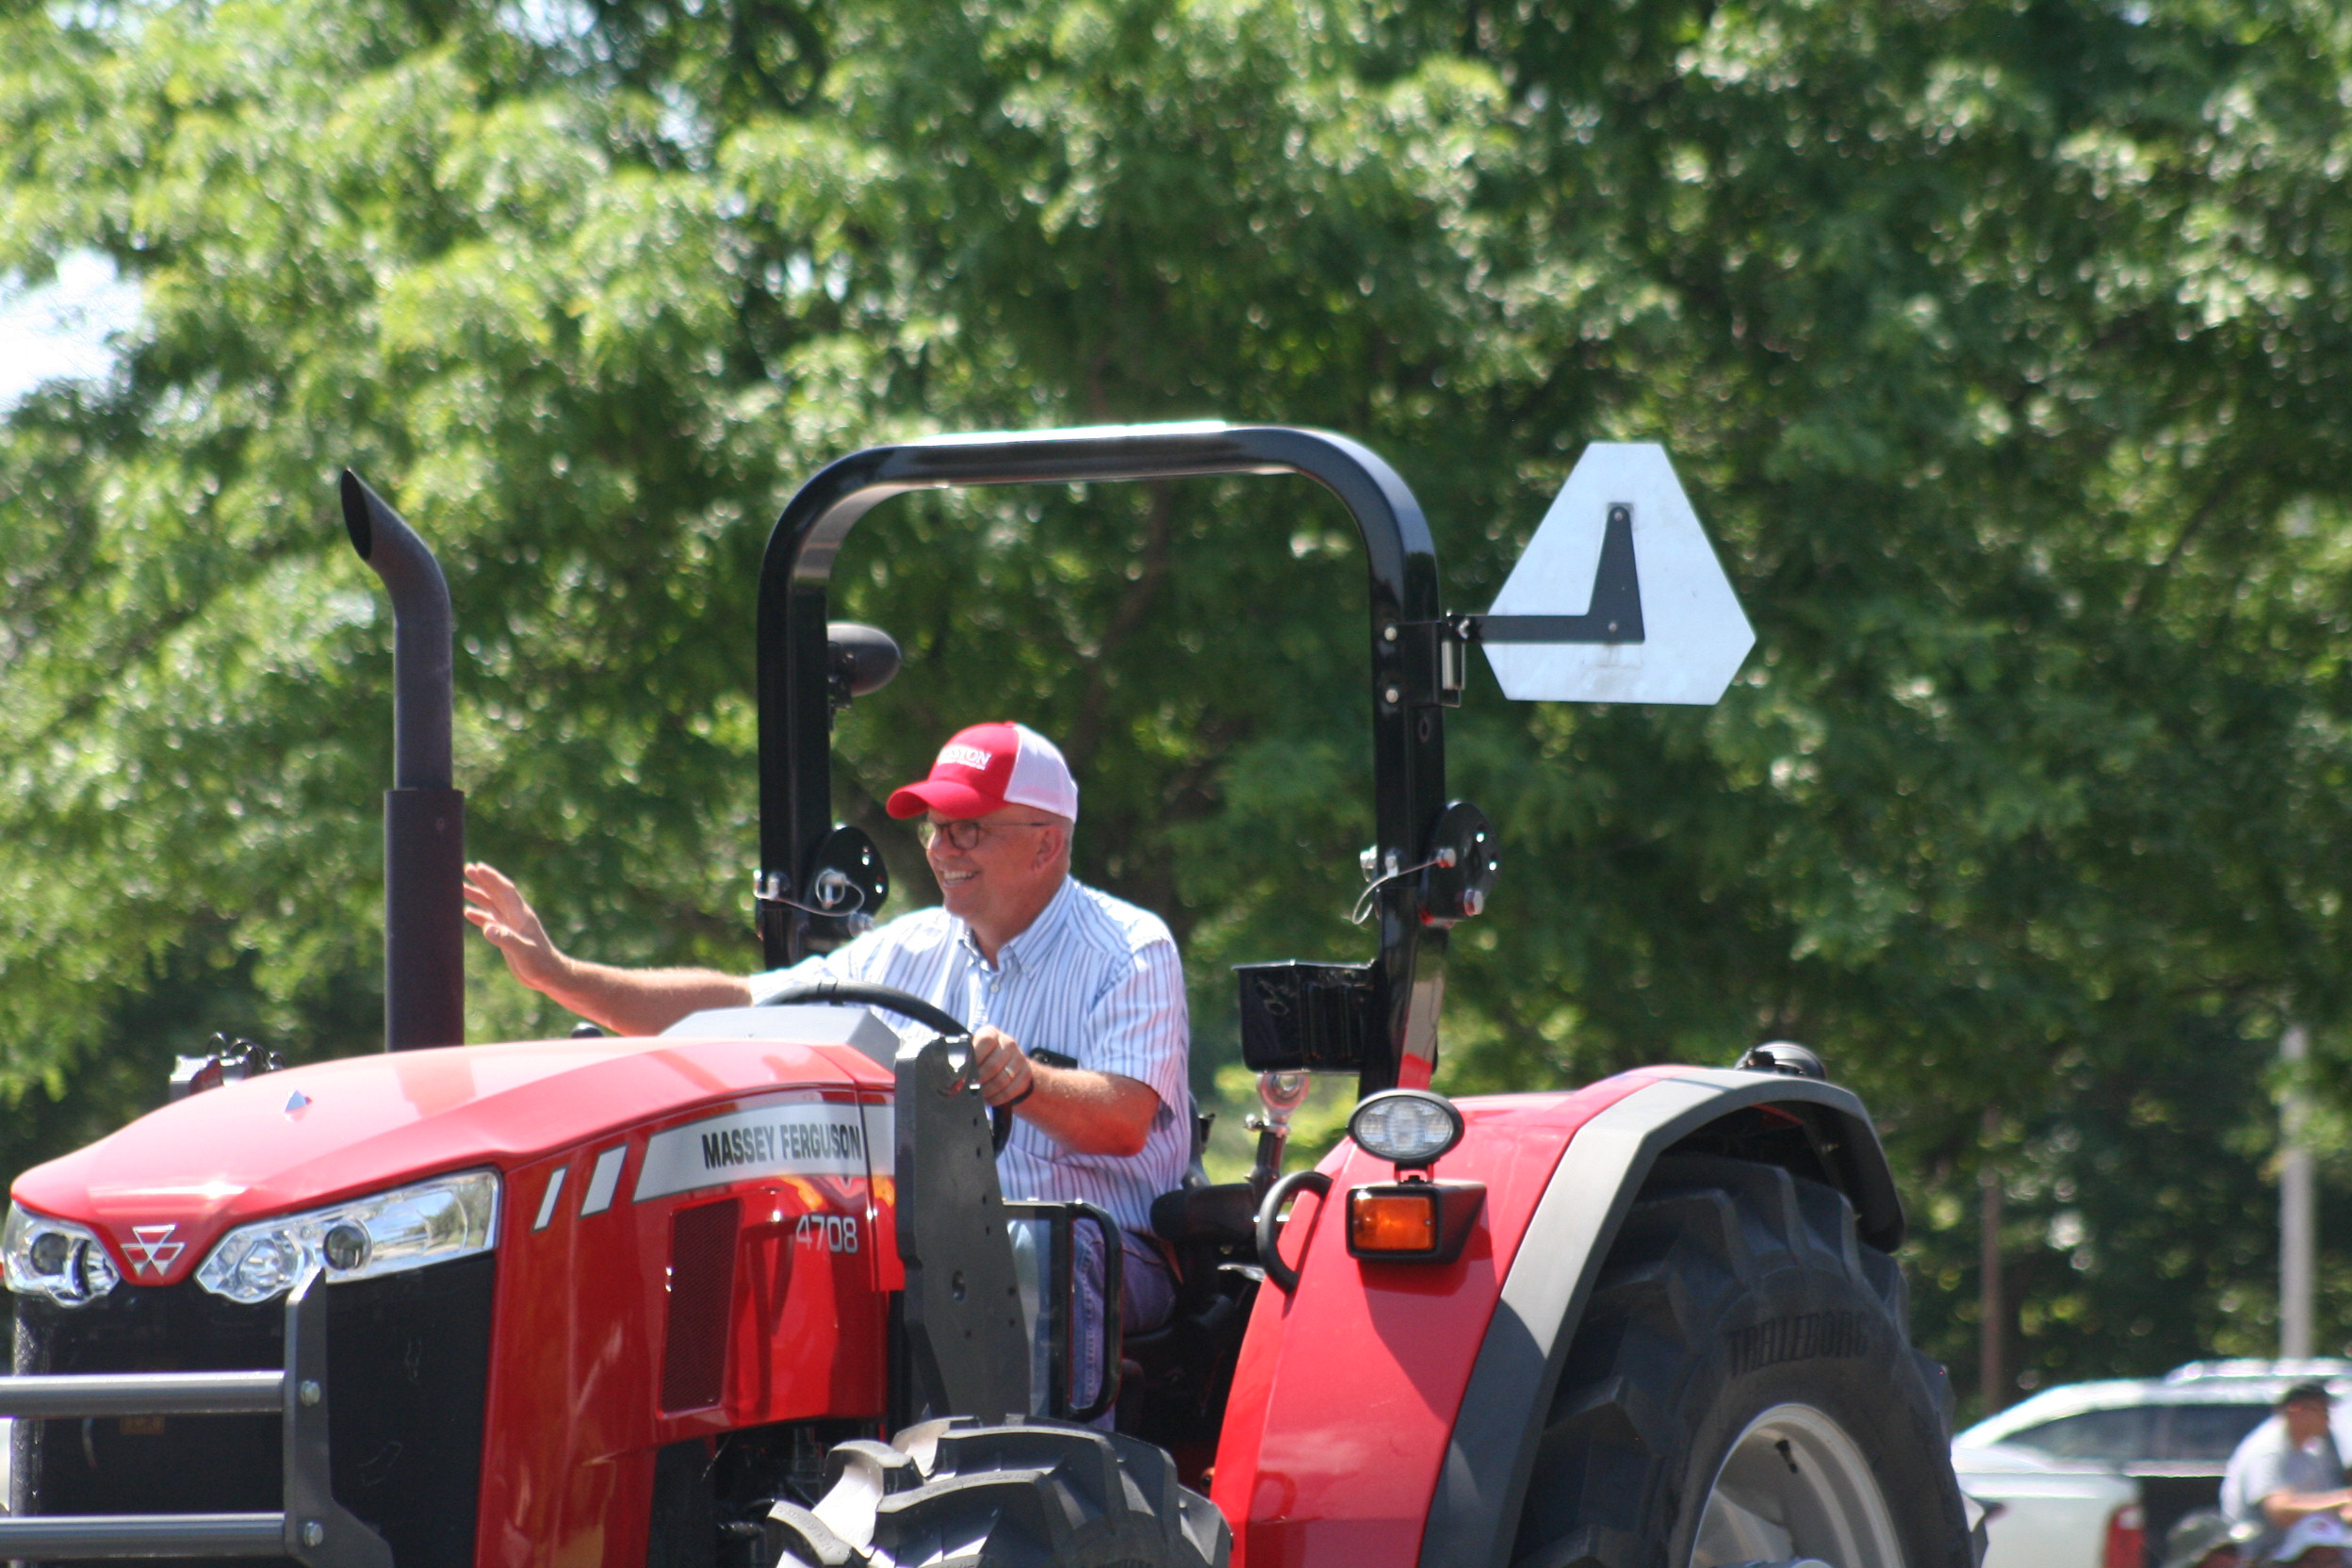 AGCO shows its products to the local community in unique way